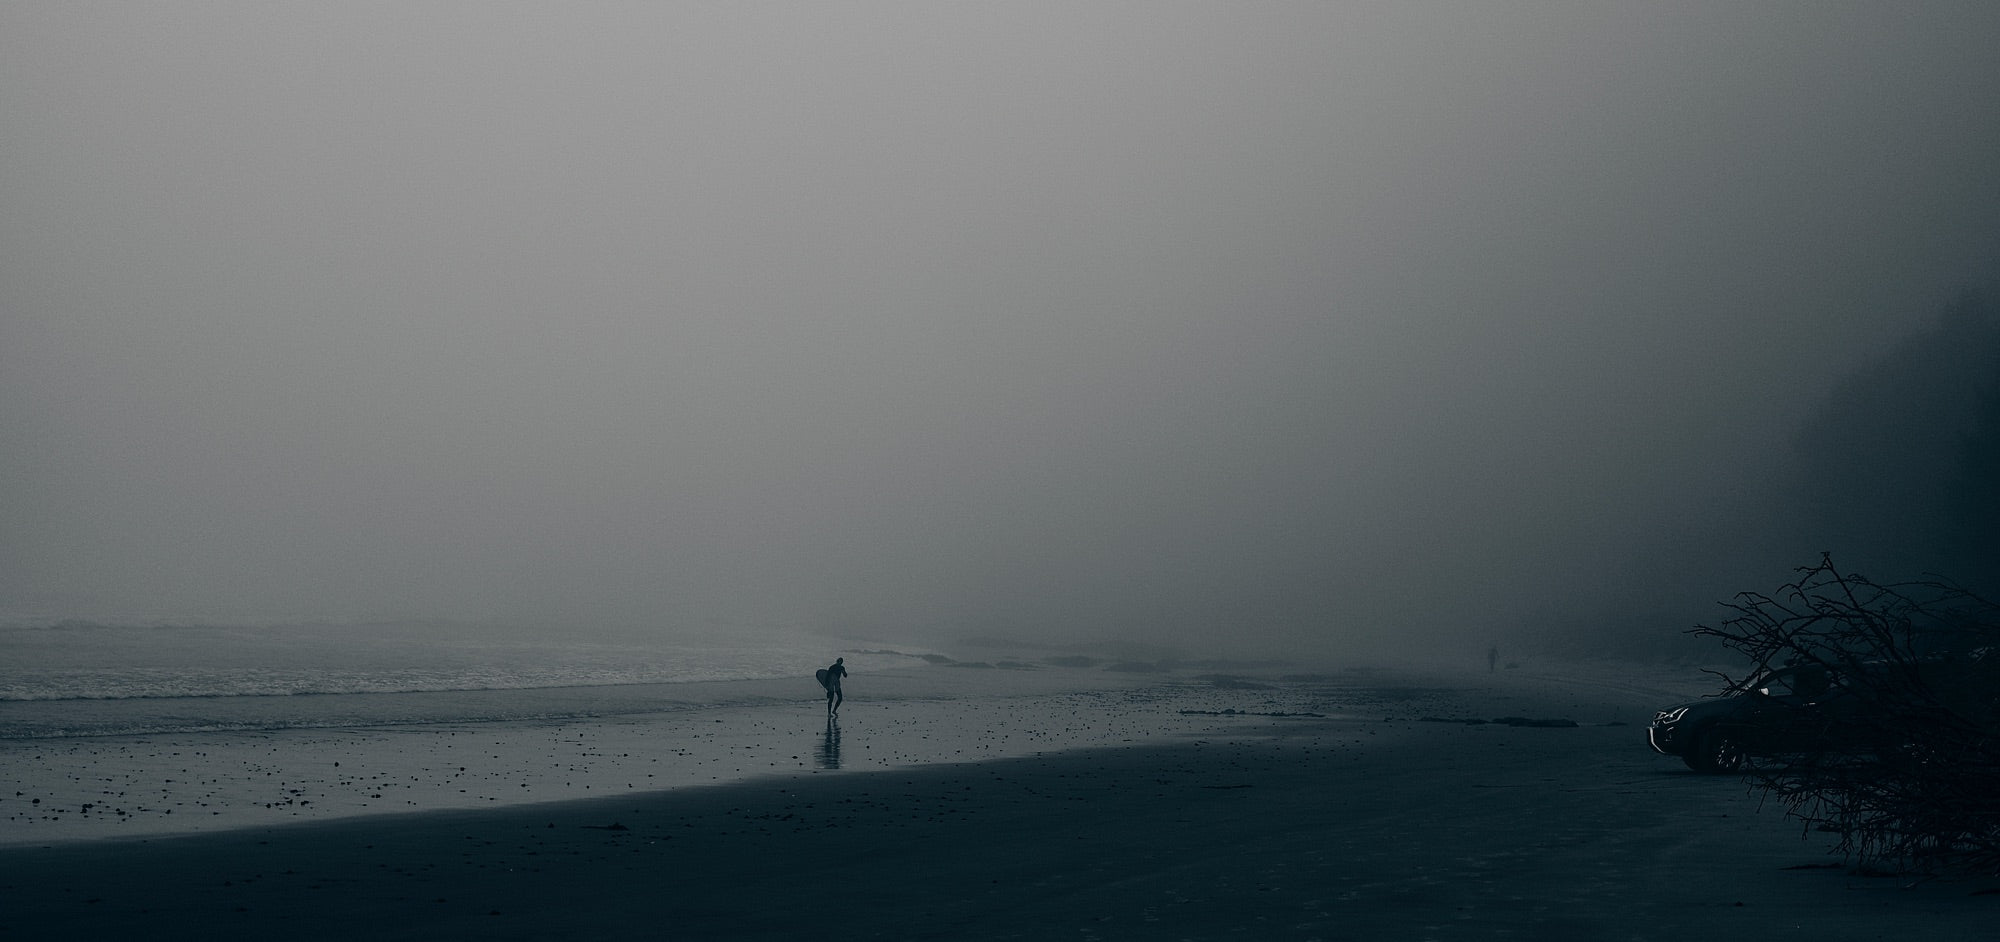 A surfer walks along a beach shrouded in mist as another figure approaches from the distance